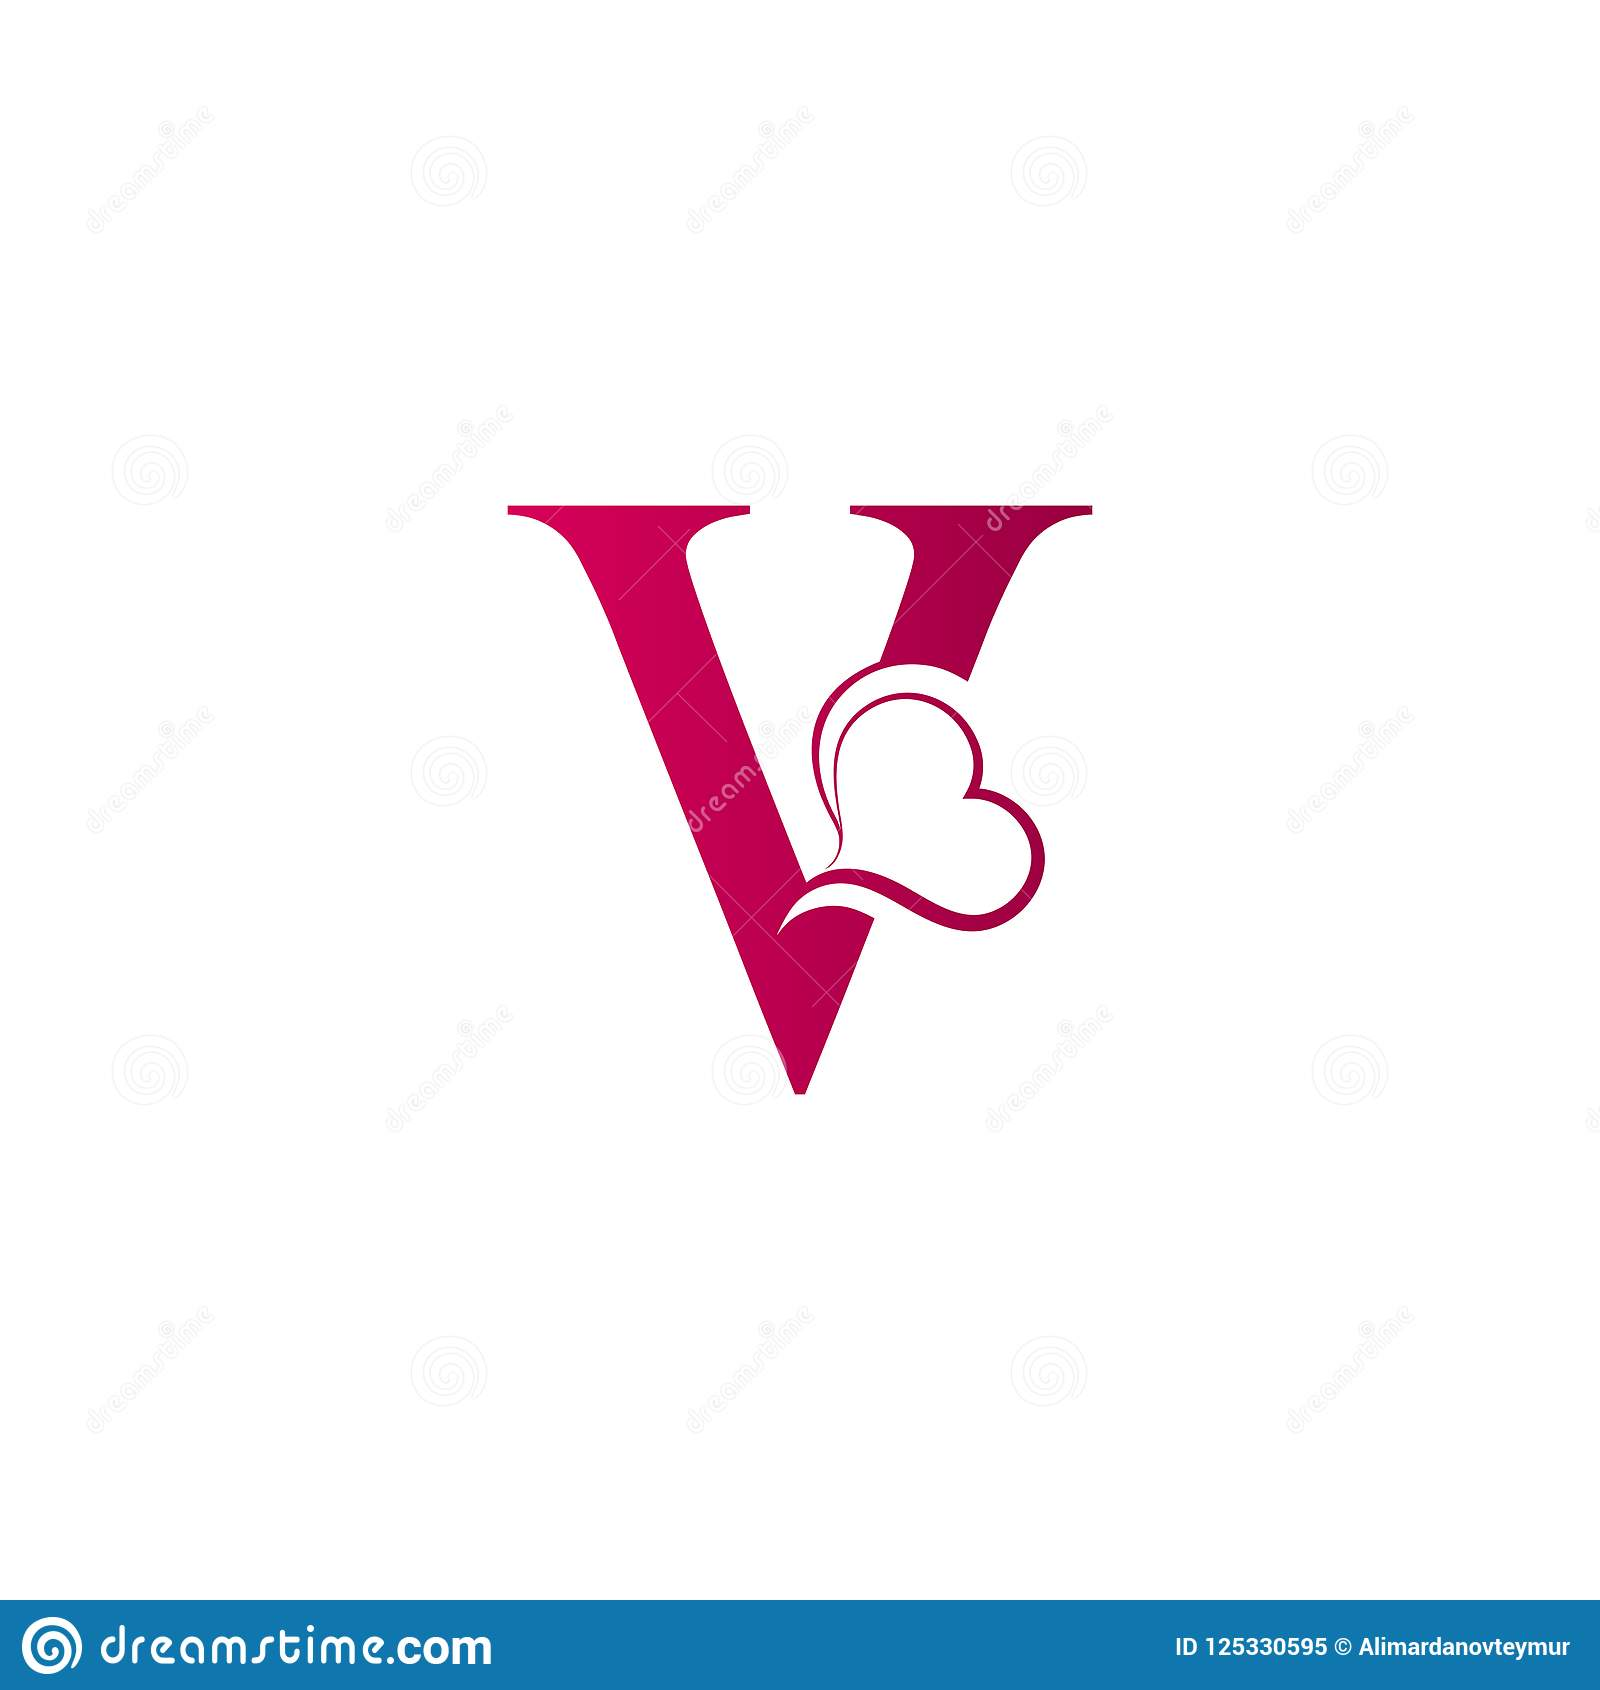 V Letter Template on free printable stencil, craft printable, printable bubble, for vase craft, arts crafts, logo design,